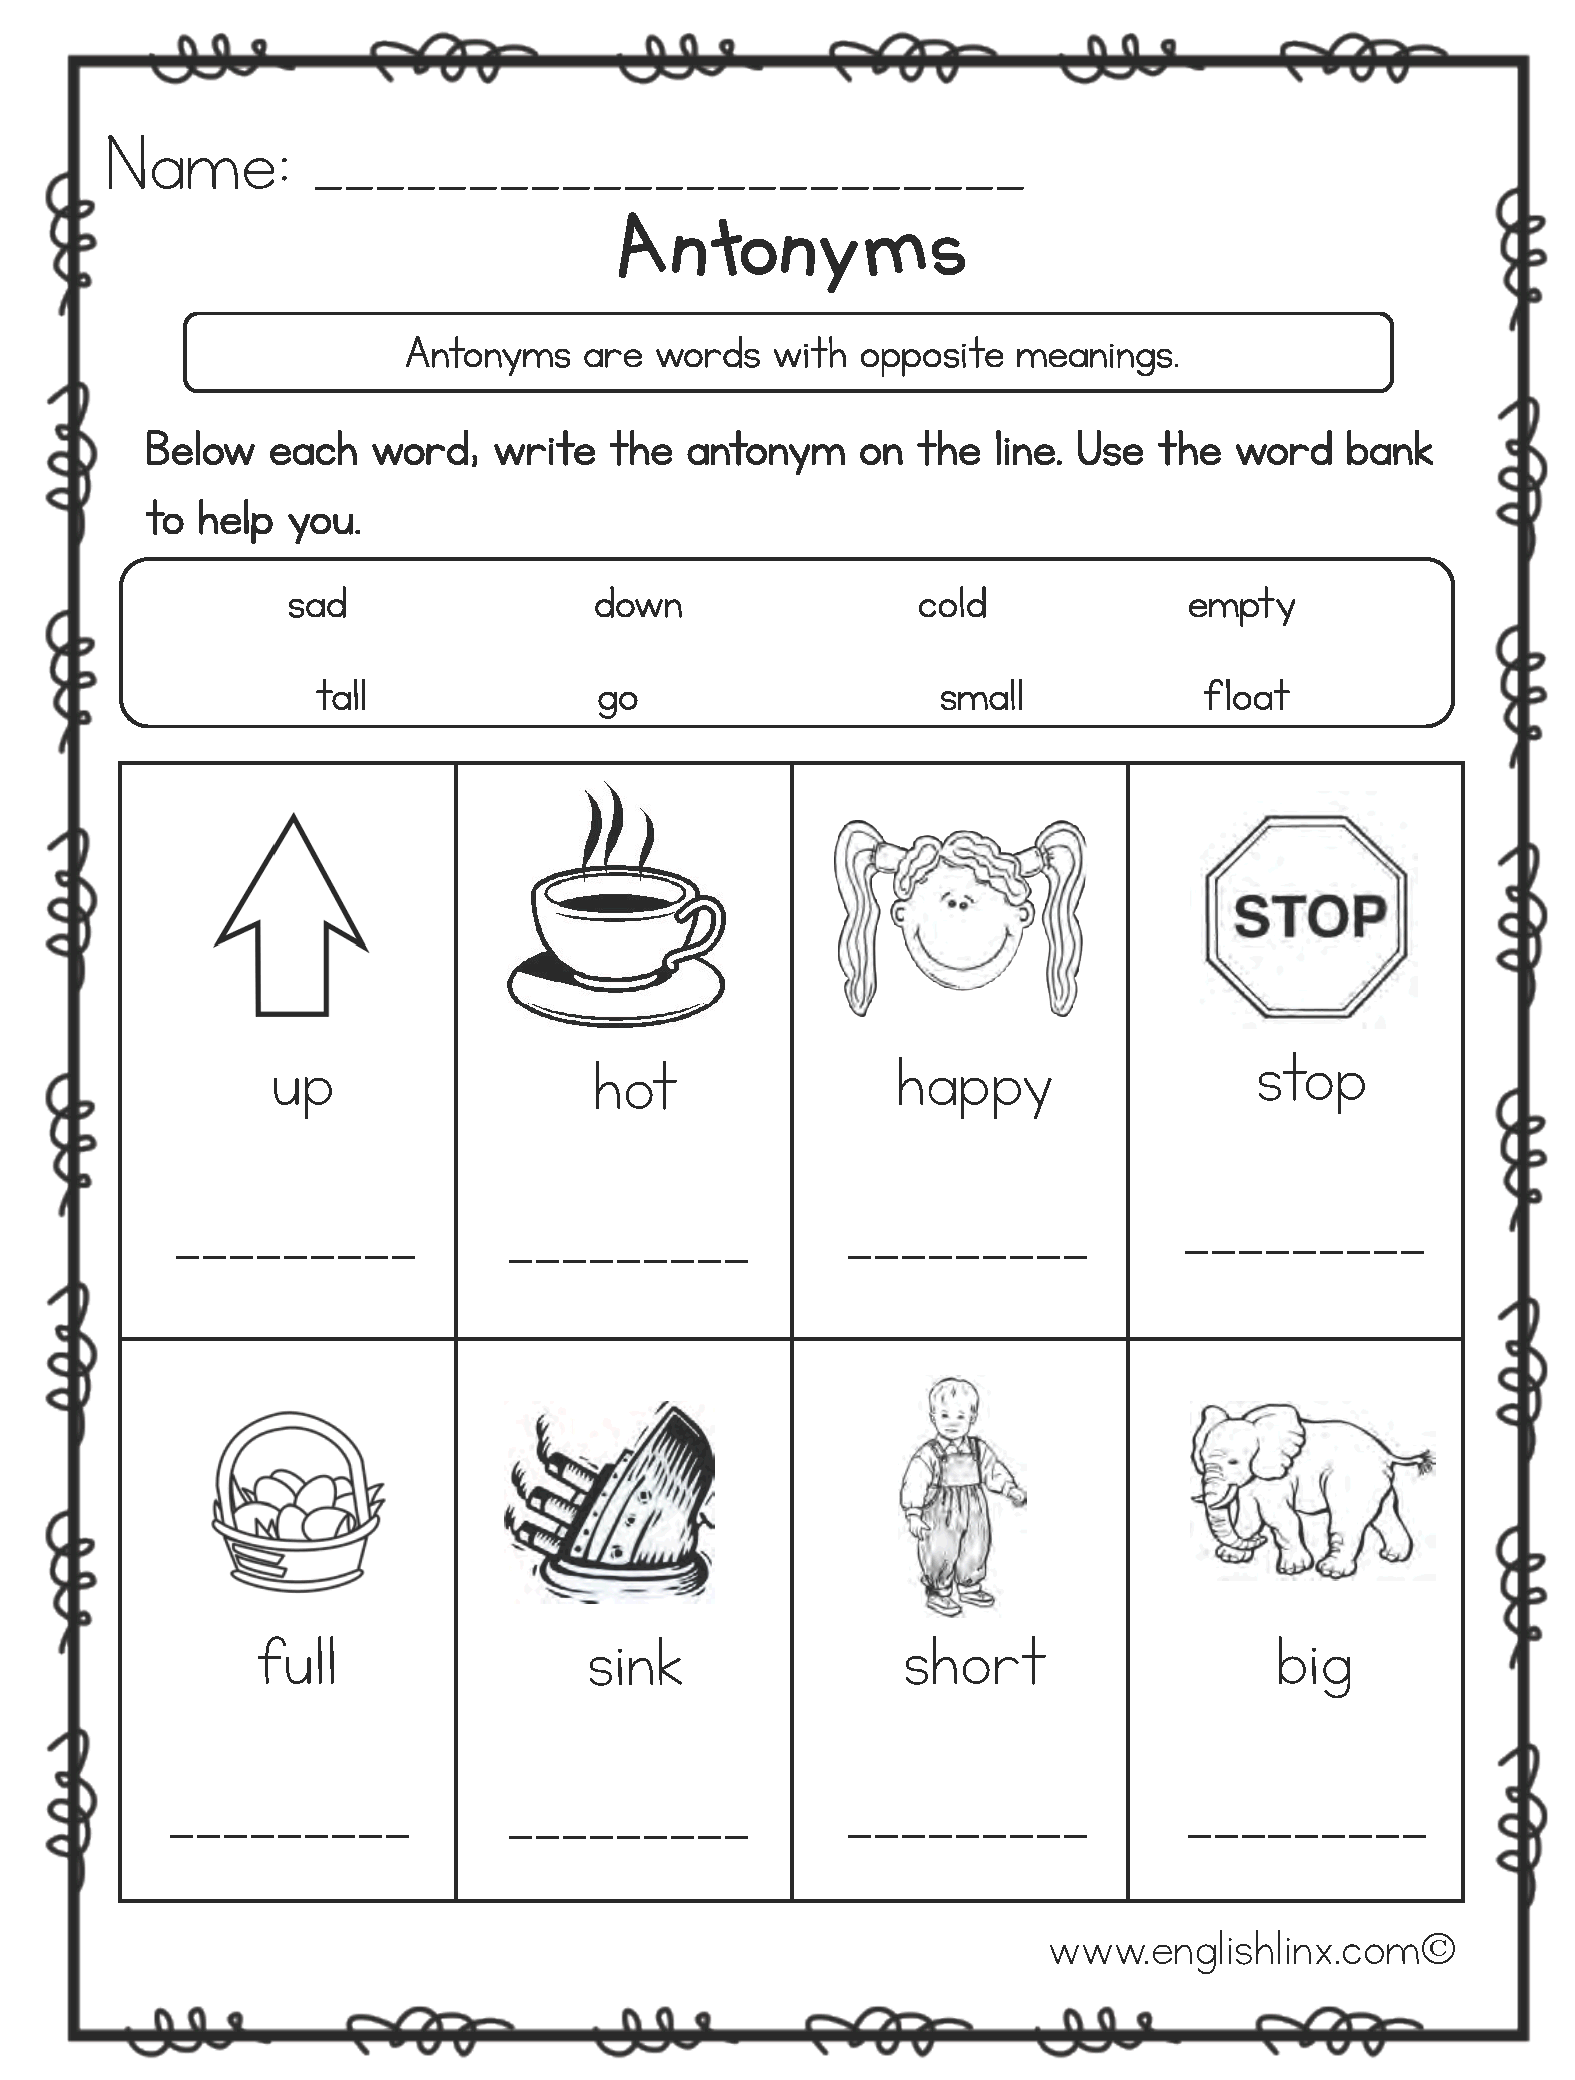 Lucrative Clue Replacement Sheets Printable